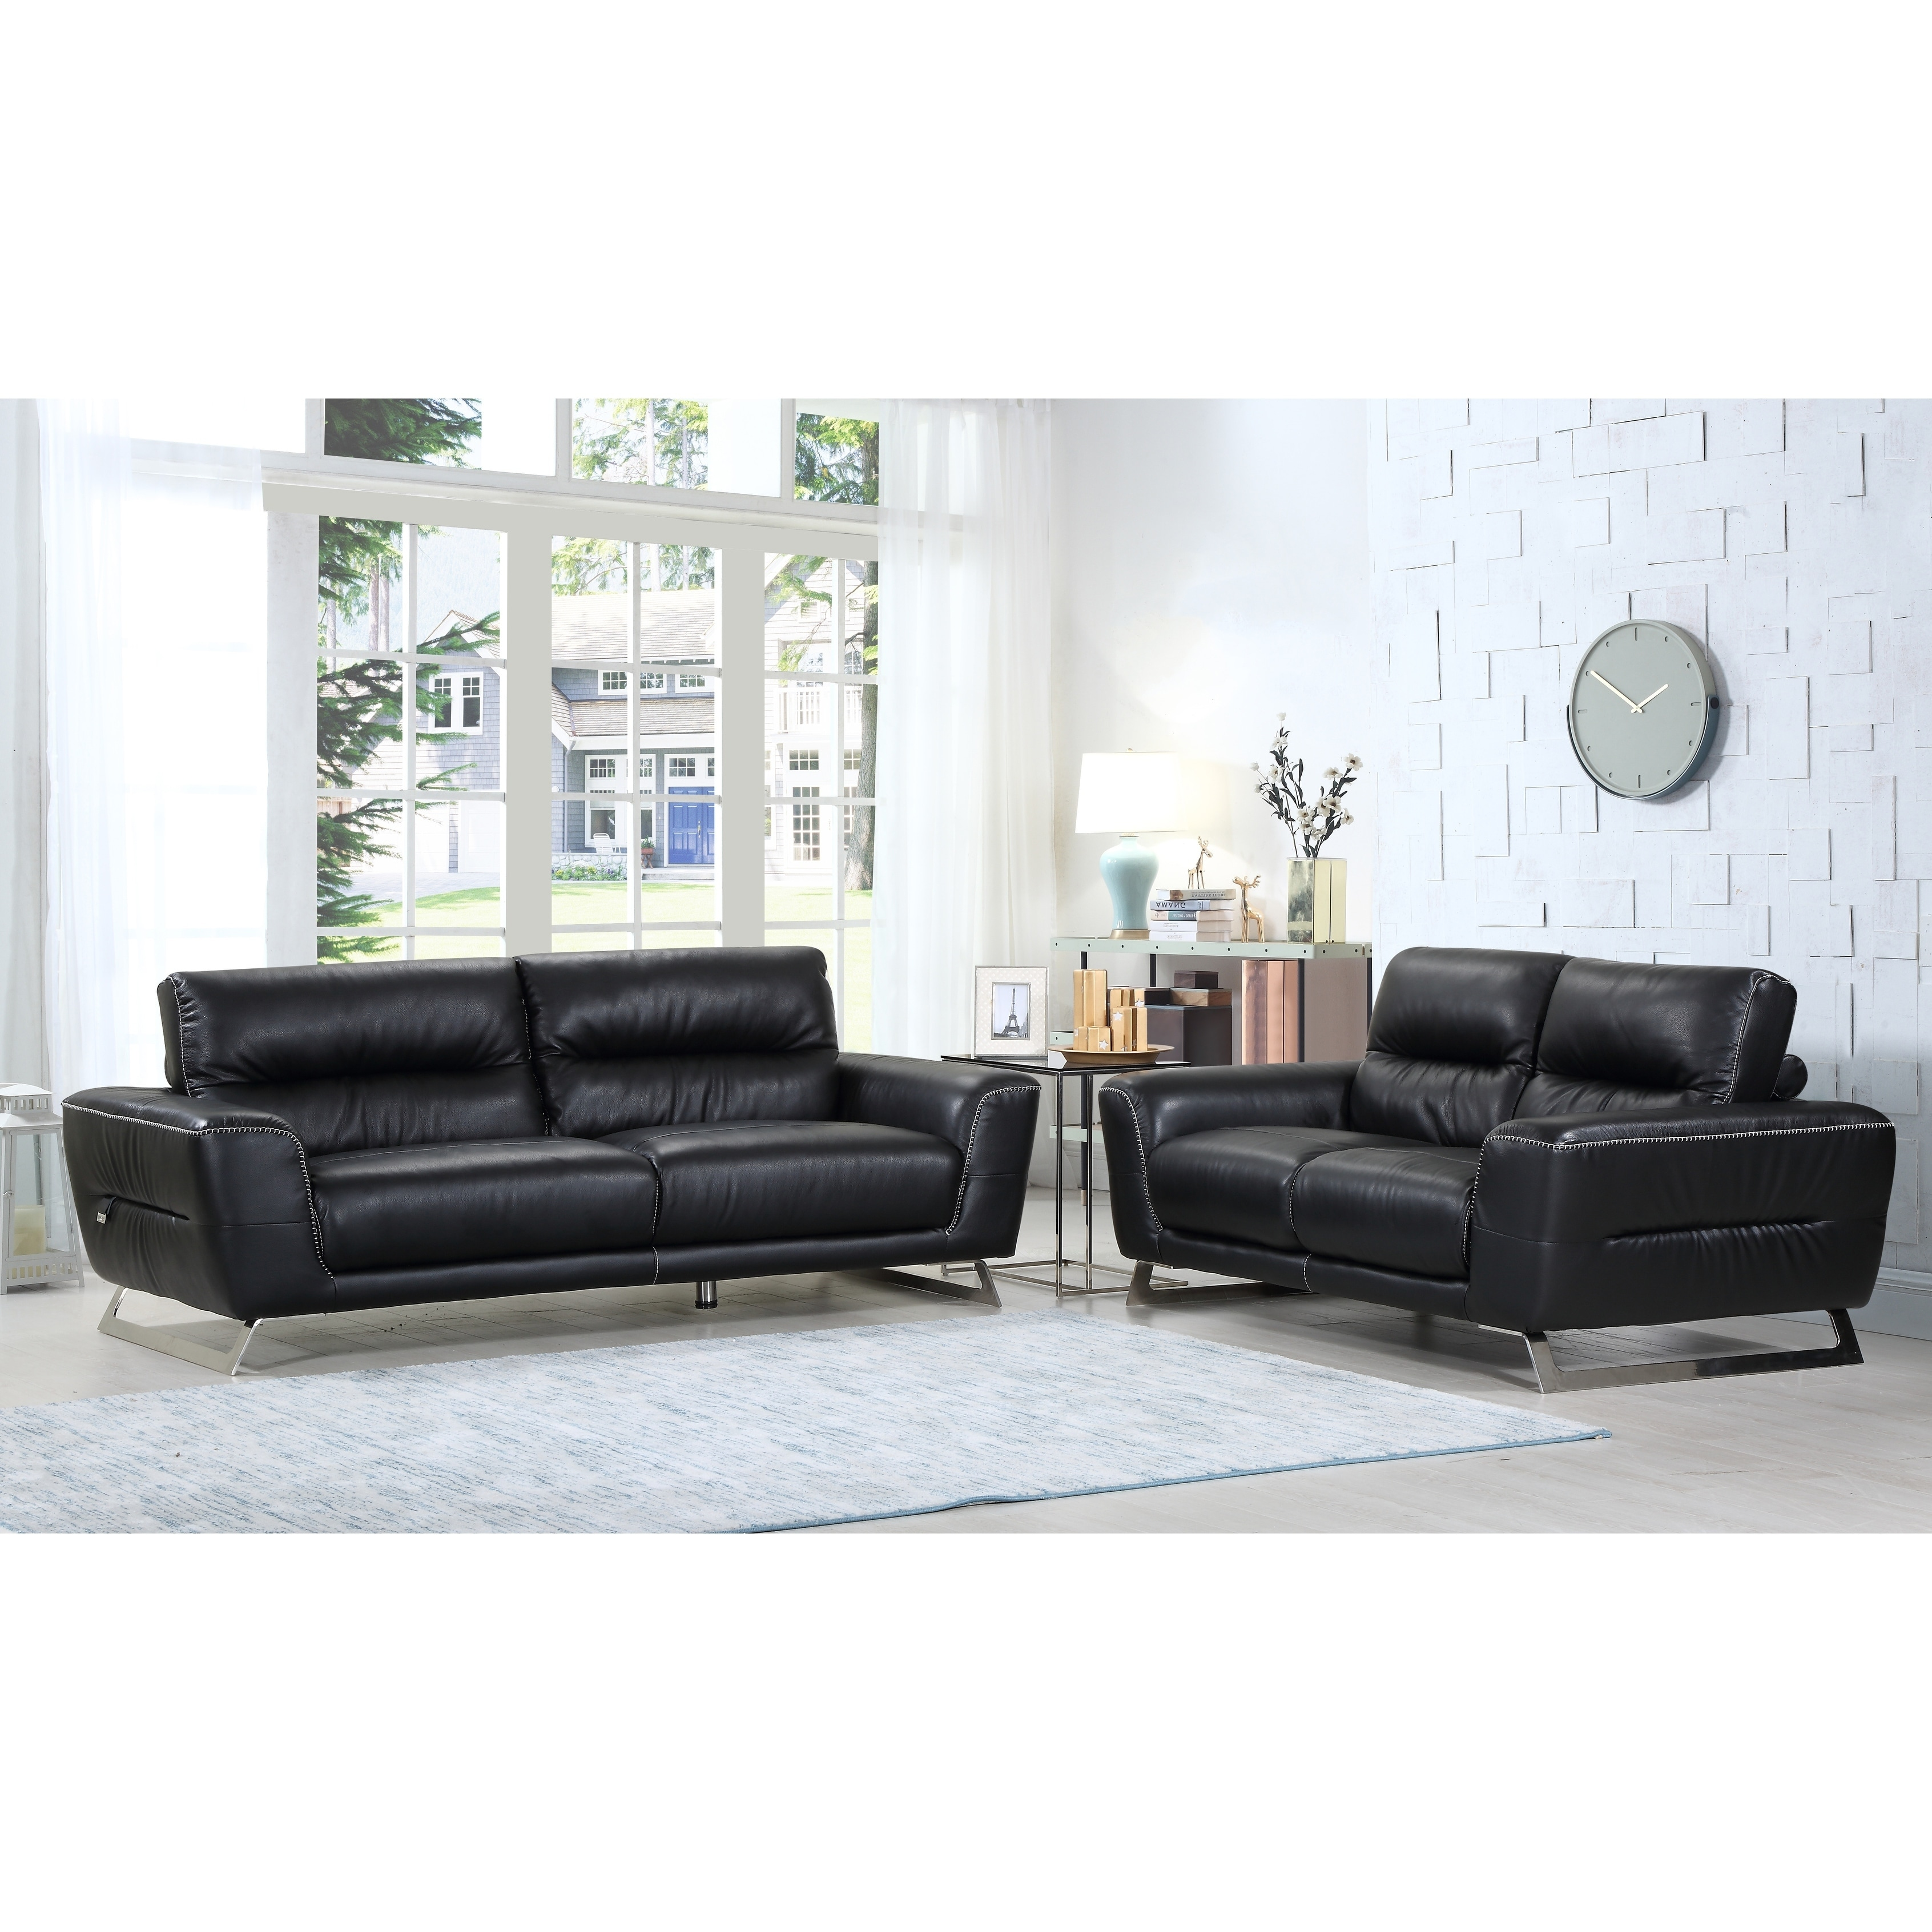 Sensational Divanitalia Torino Luxury Italian Leather Upholstered 2 Piece Living Room Sofa Set Home Interior And Landscaping Thycampuscom